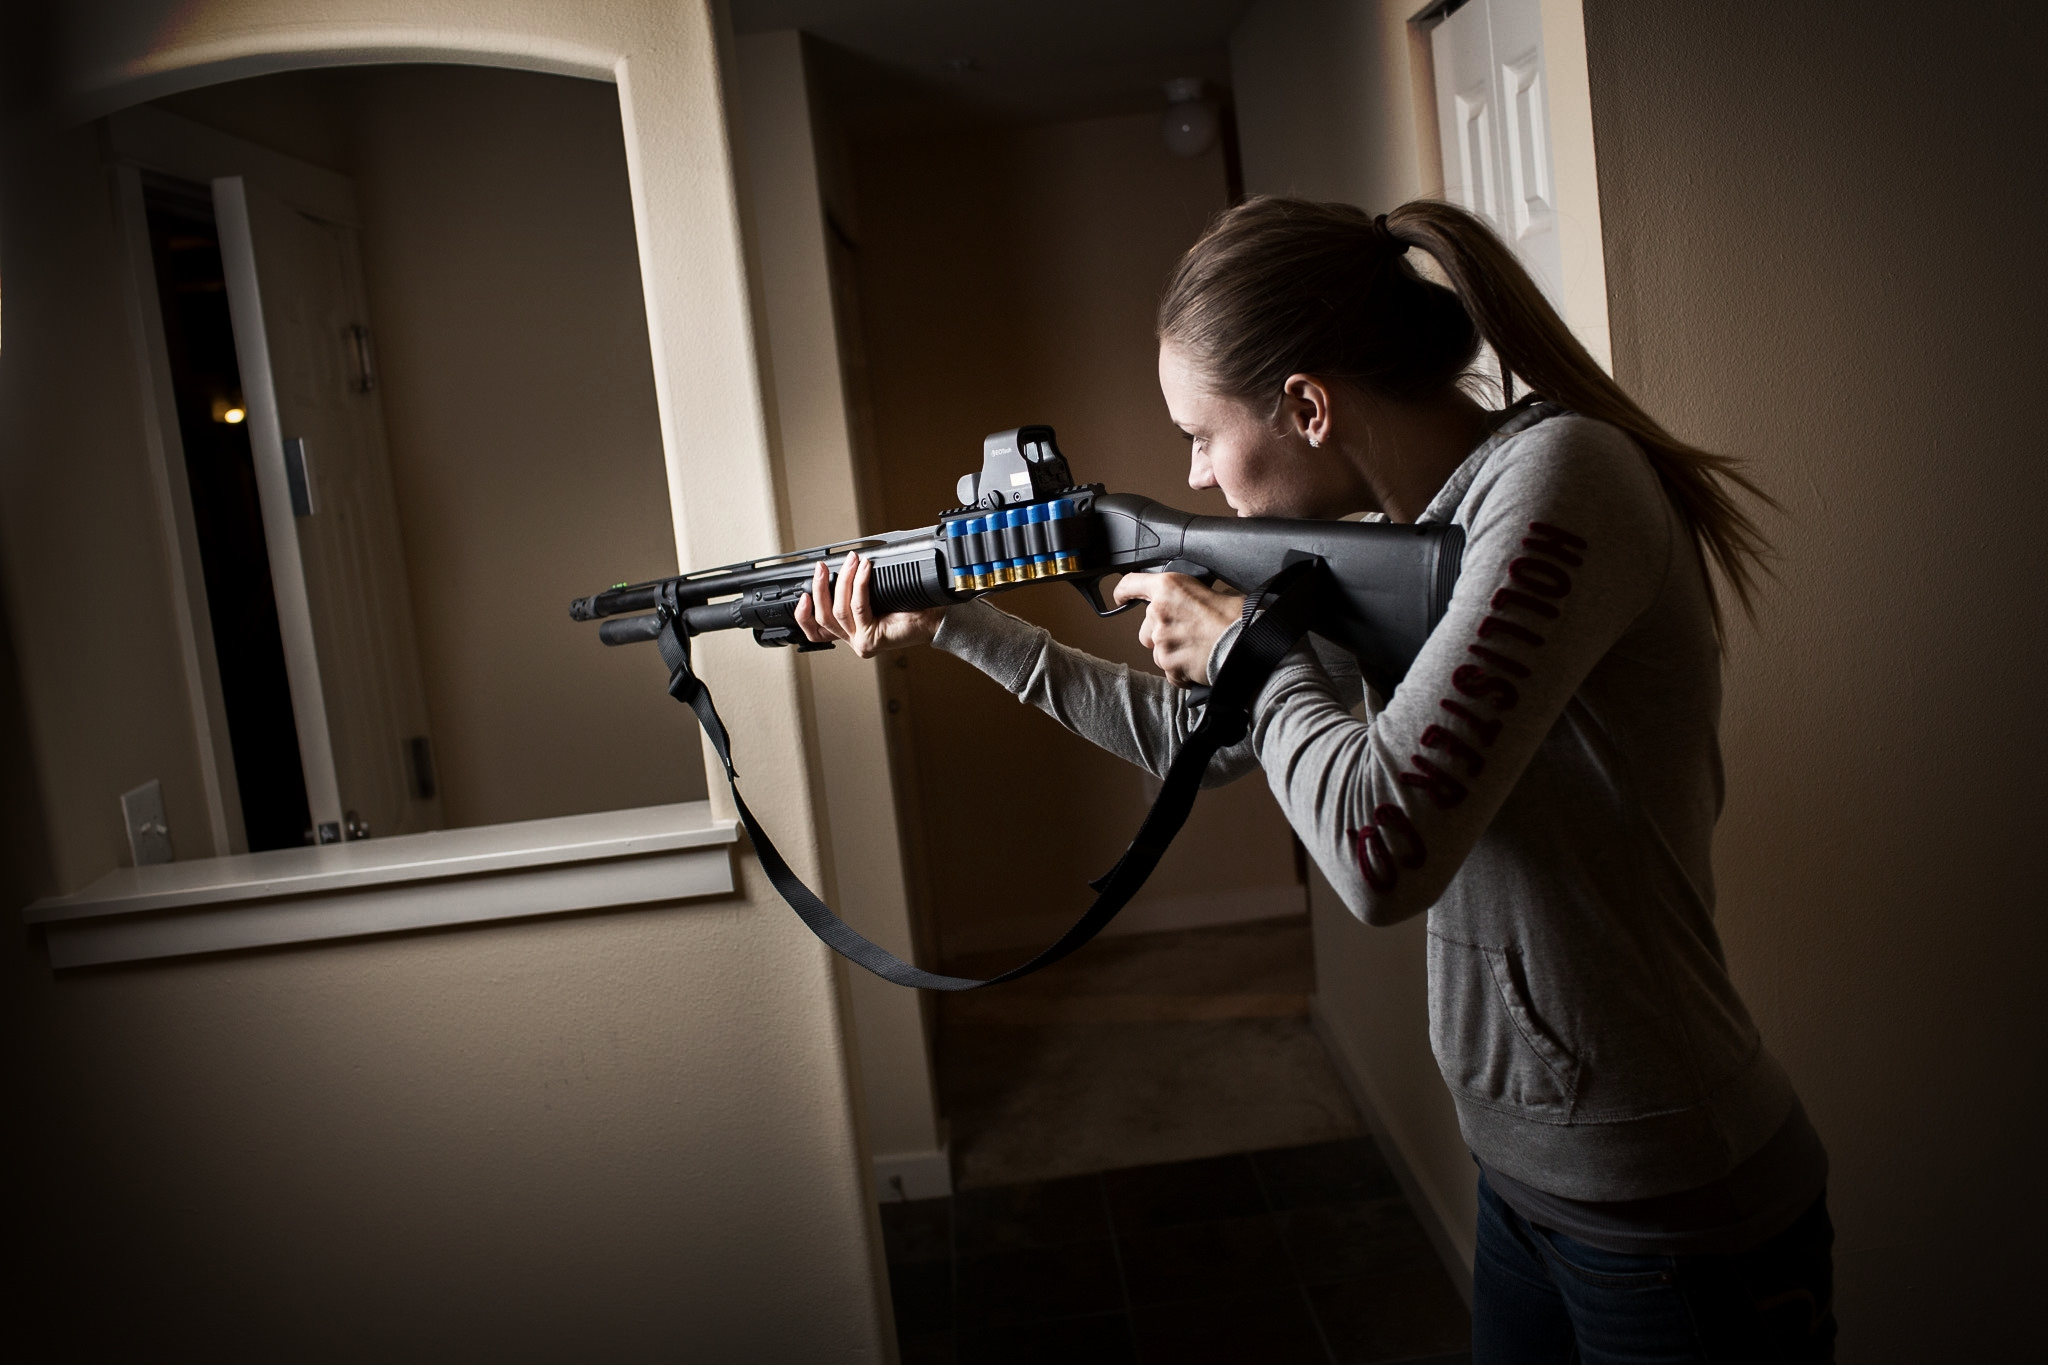 A woman holds up a shotgun